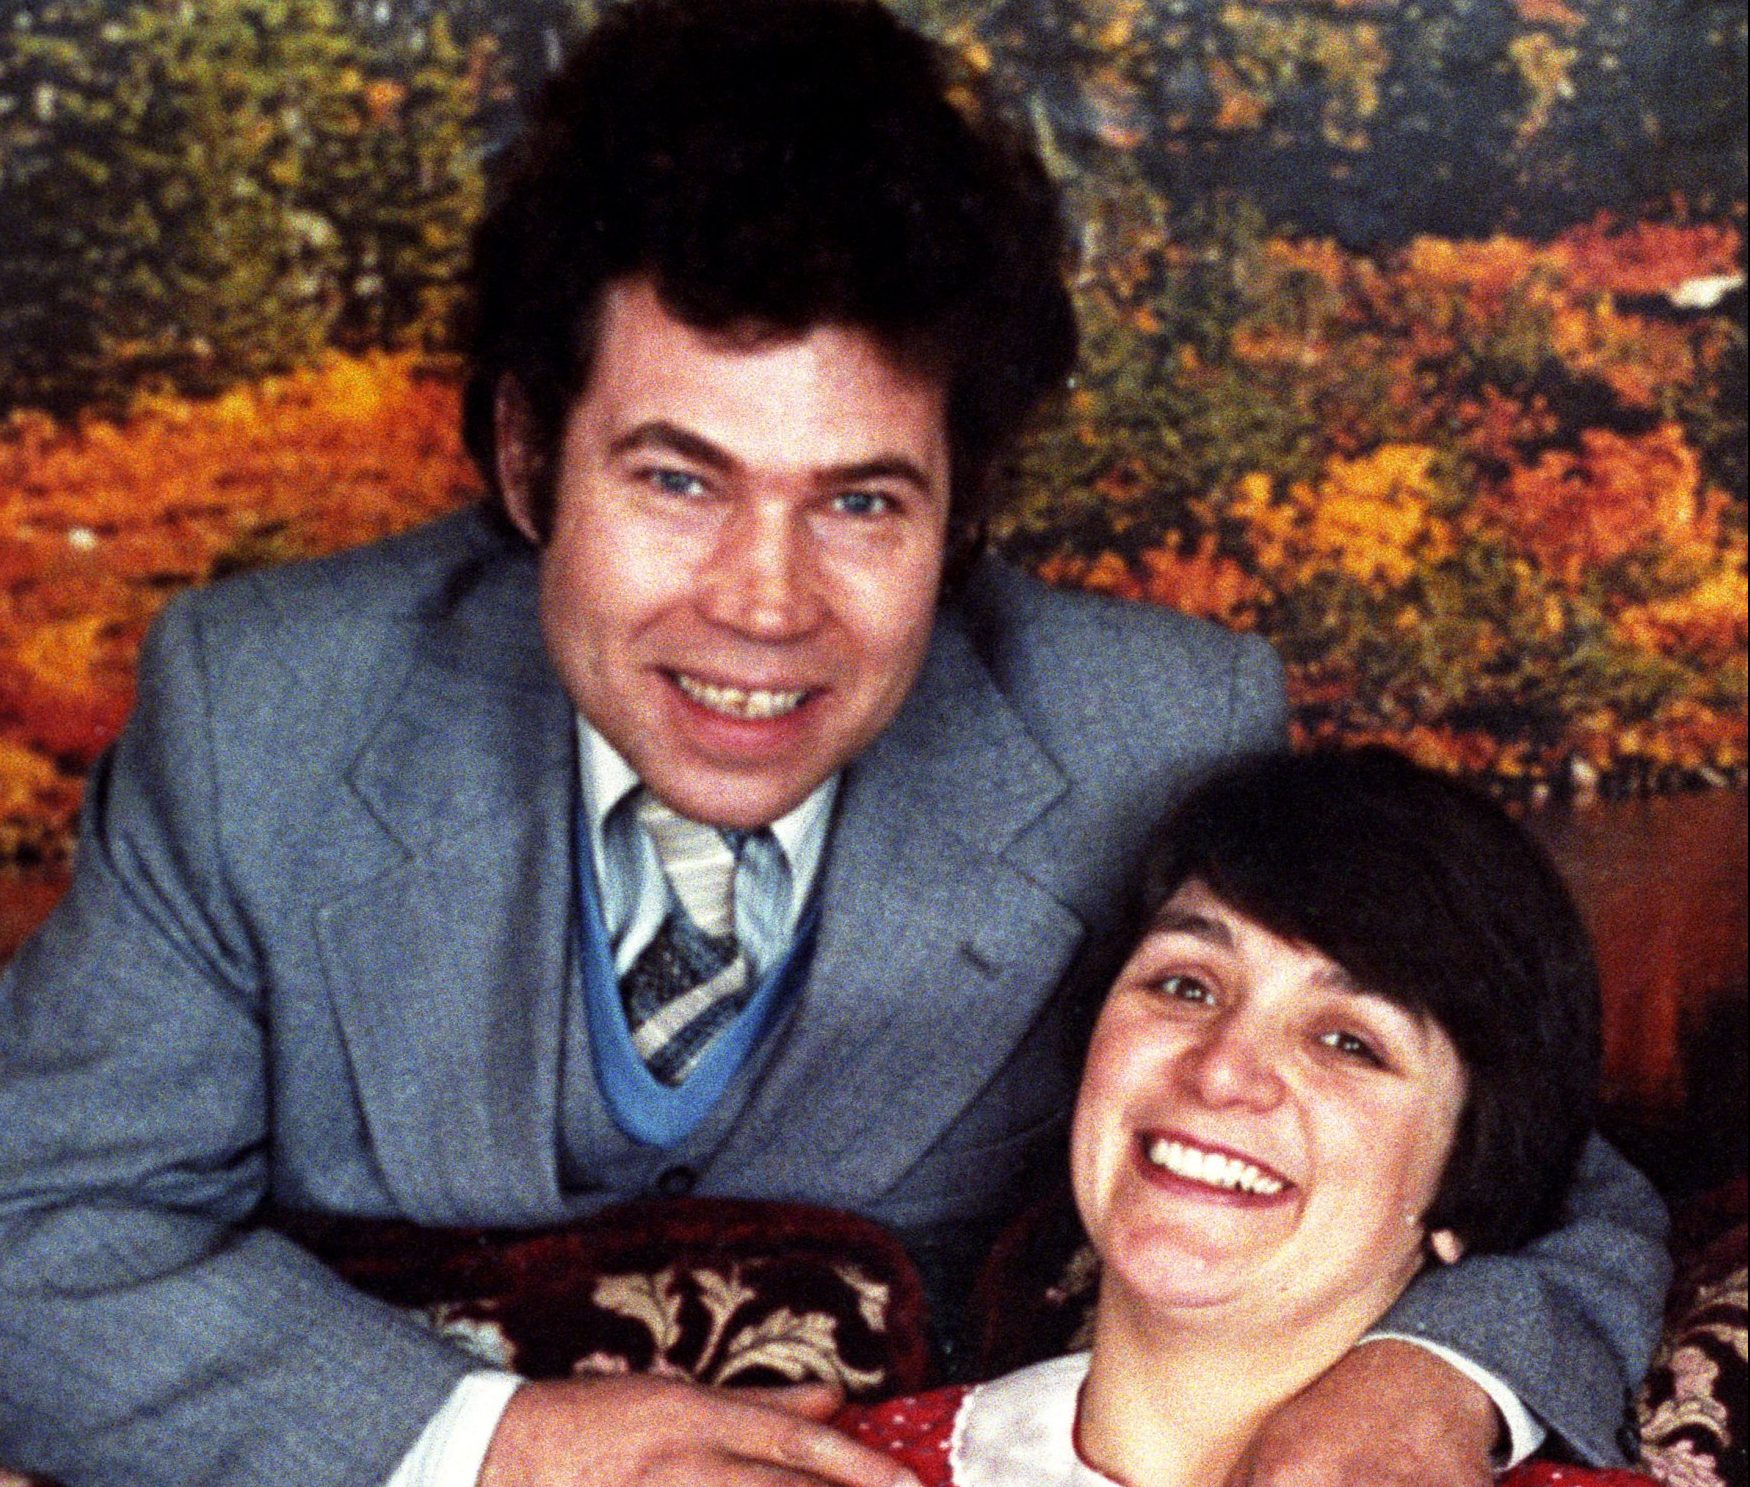 HANDOUT - Serial killers Fred and Rosemary West.